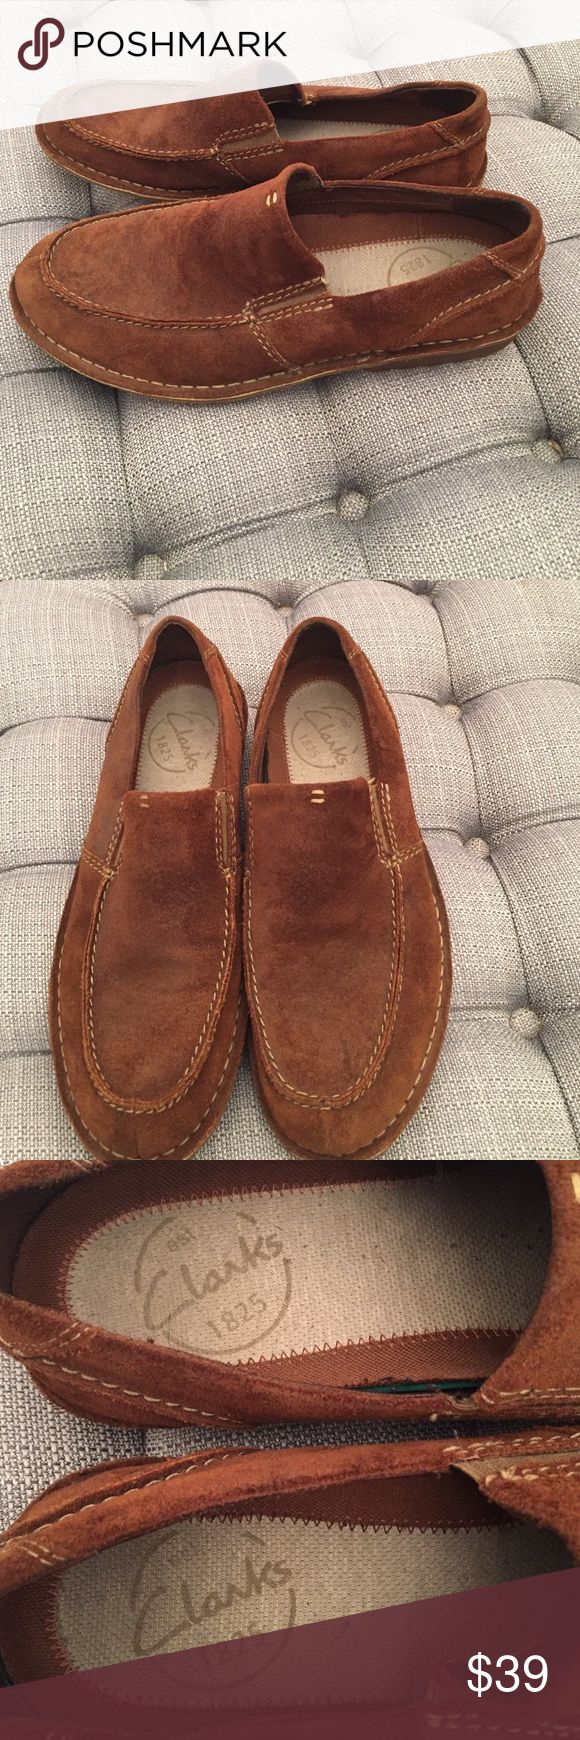 Clarks brown suede loafers 11.5 medium like new Clarks brown rough-out suede loafer slip on shoes. Barely worn in like new condition. Size 11 1/2 medium. Clarks Shoes Loafers & Slip-Ons